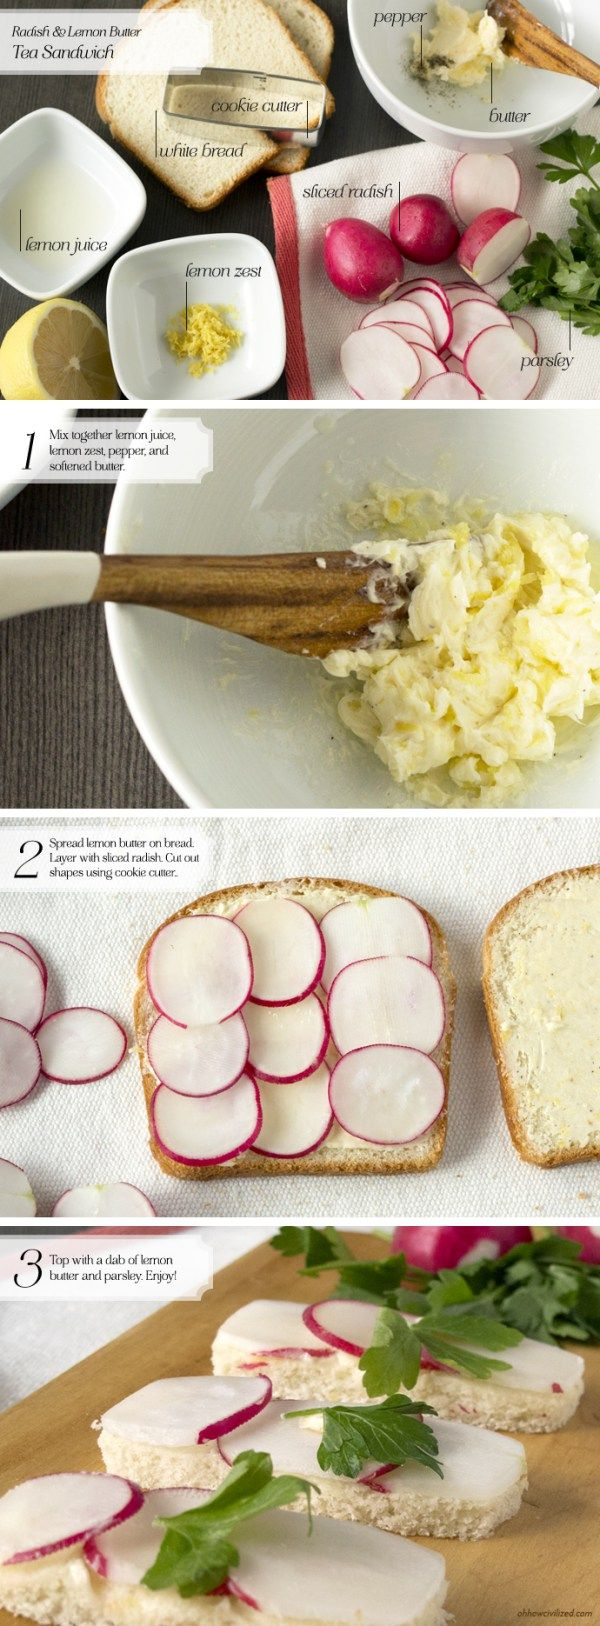 Instead of mayo, I opted for lemon butter which added a nice touch to simple rad…